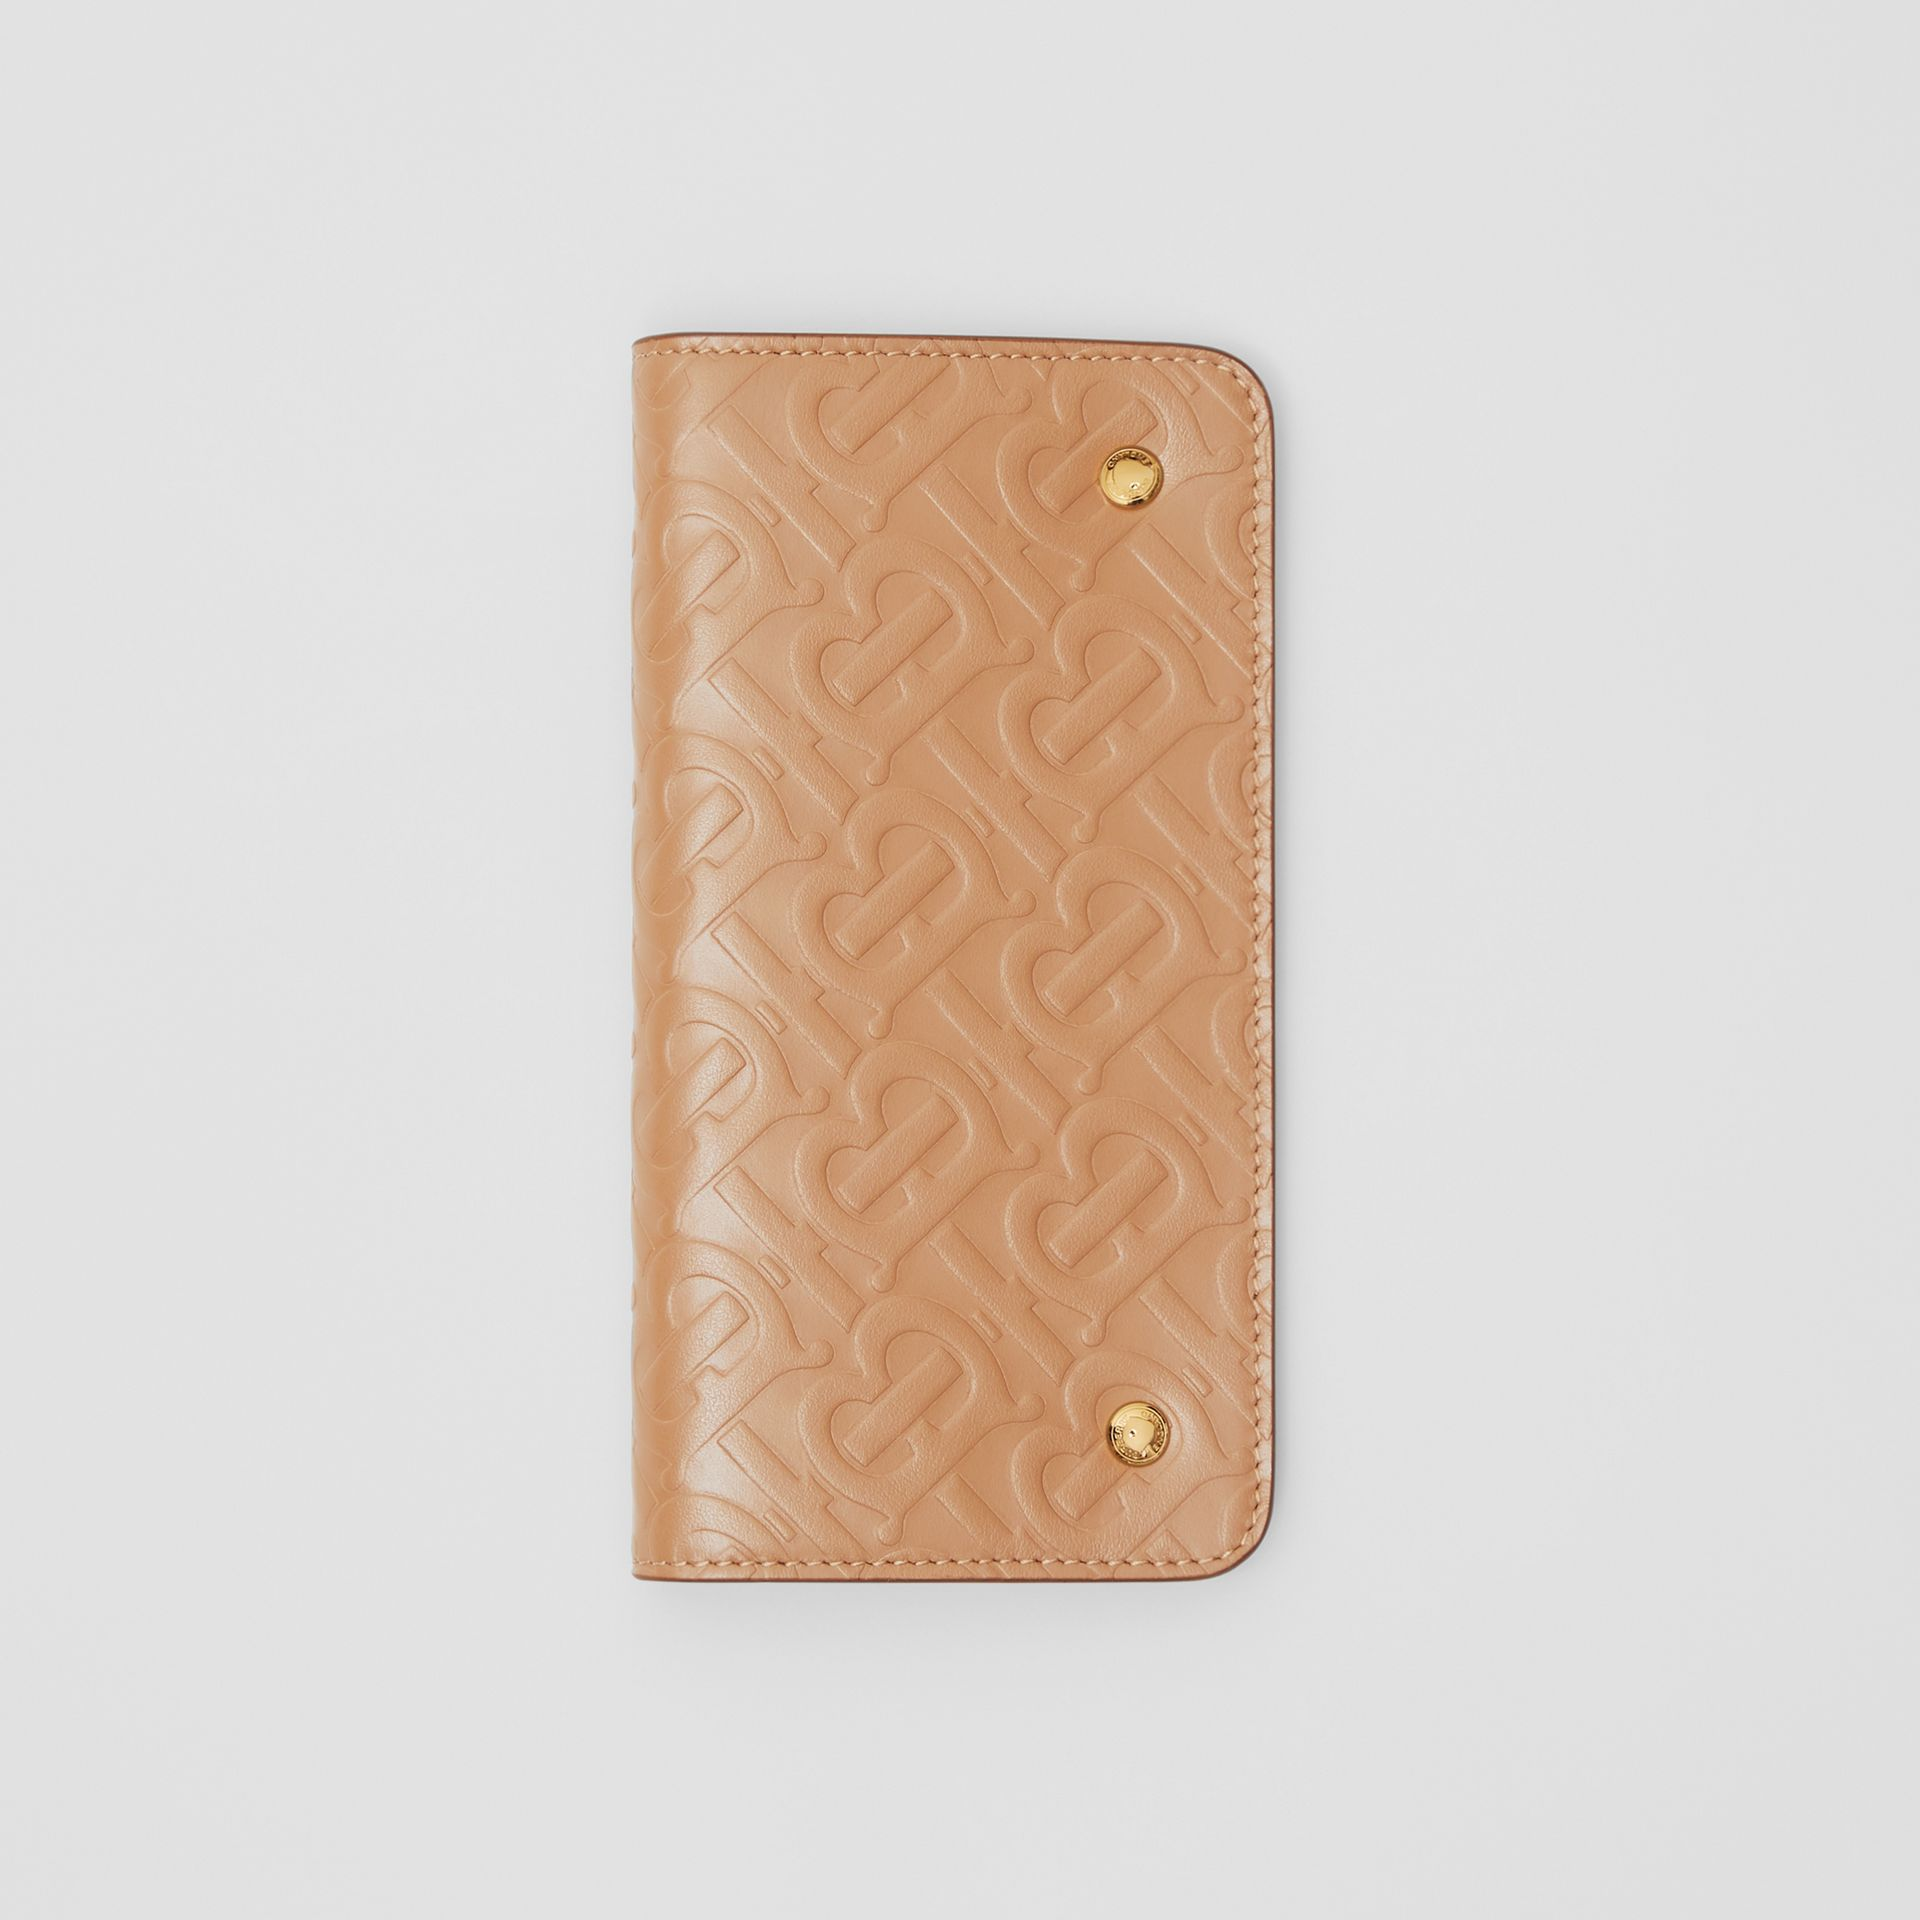 Monogram Leather Phone Wallet in Light Camel - Women | Burberry United Kingdom - gallery image 2